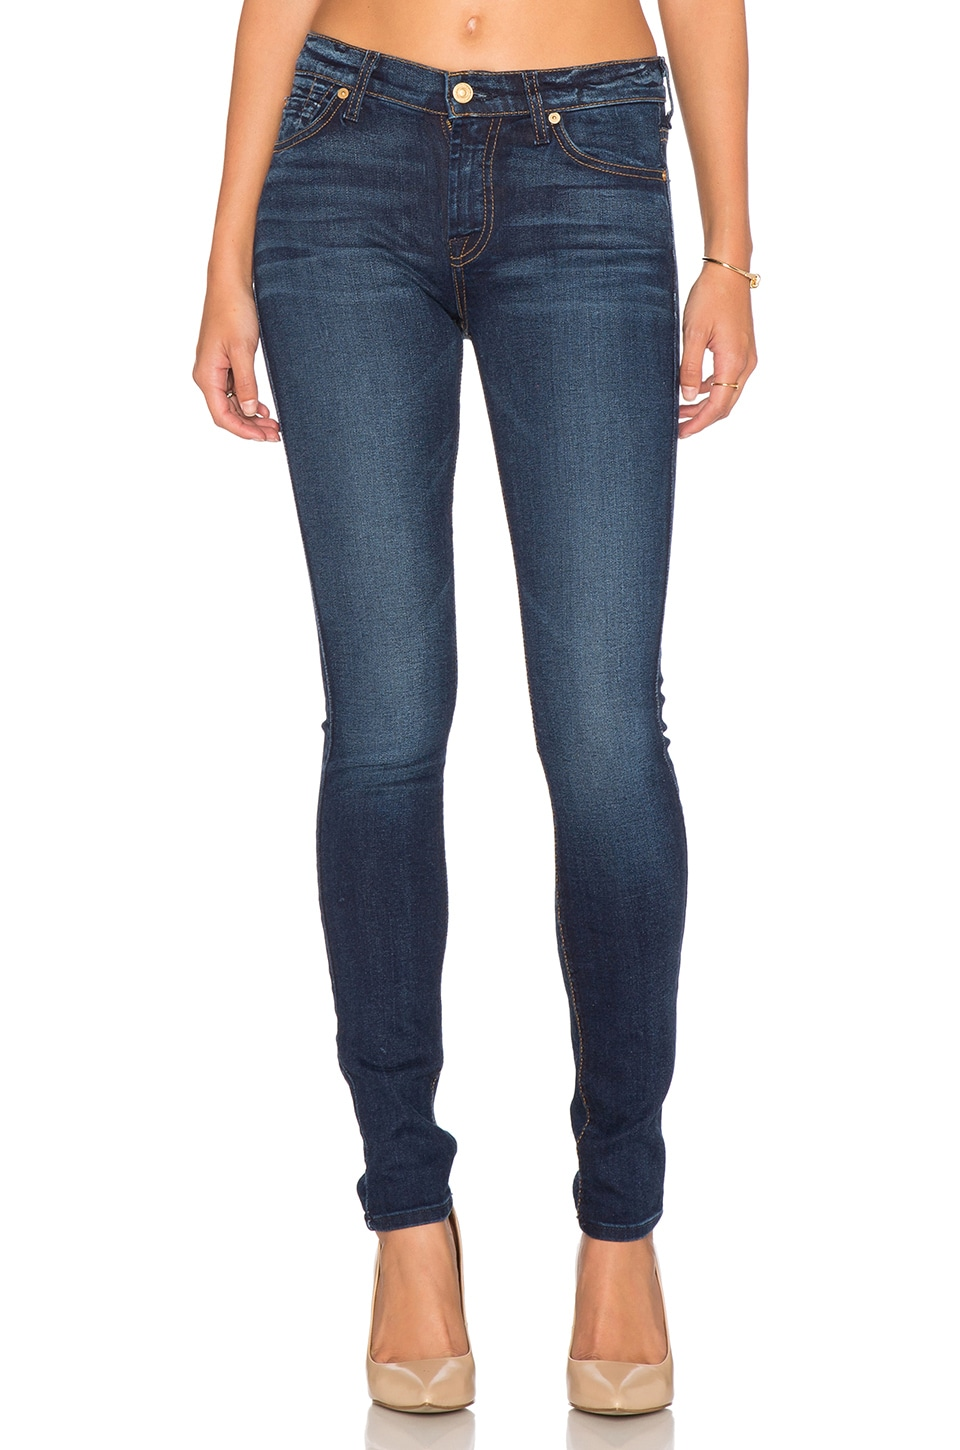 7 For All Mankind The Spice Squiggle Skinny in Slim Illusion Rich Vibrant Blue